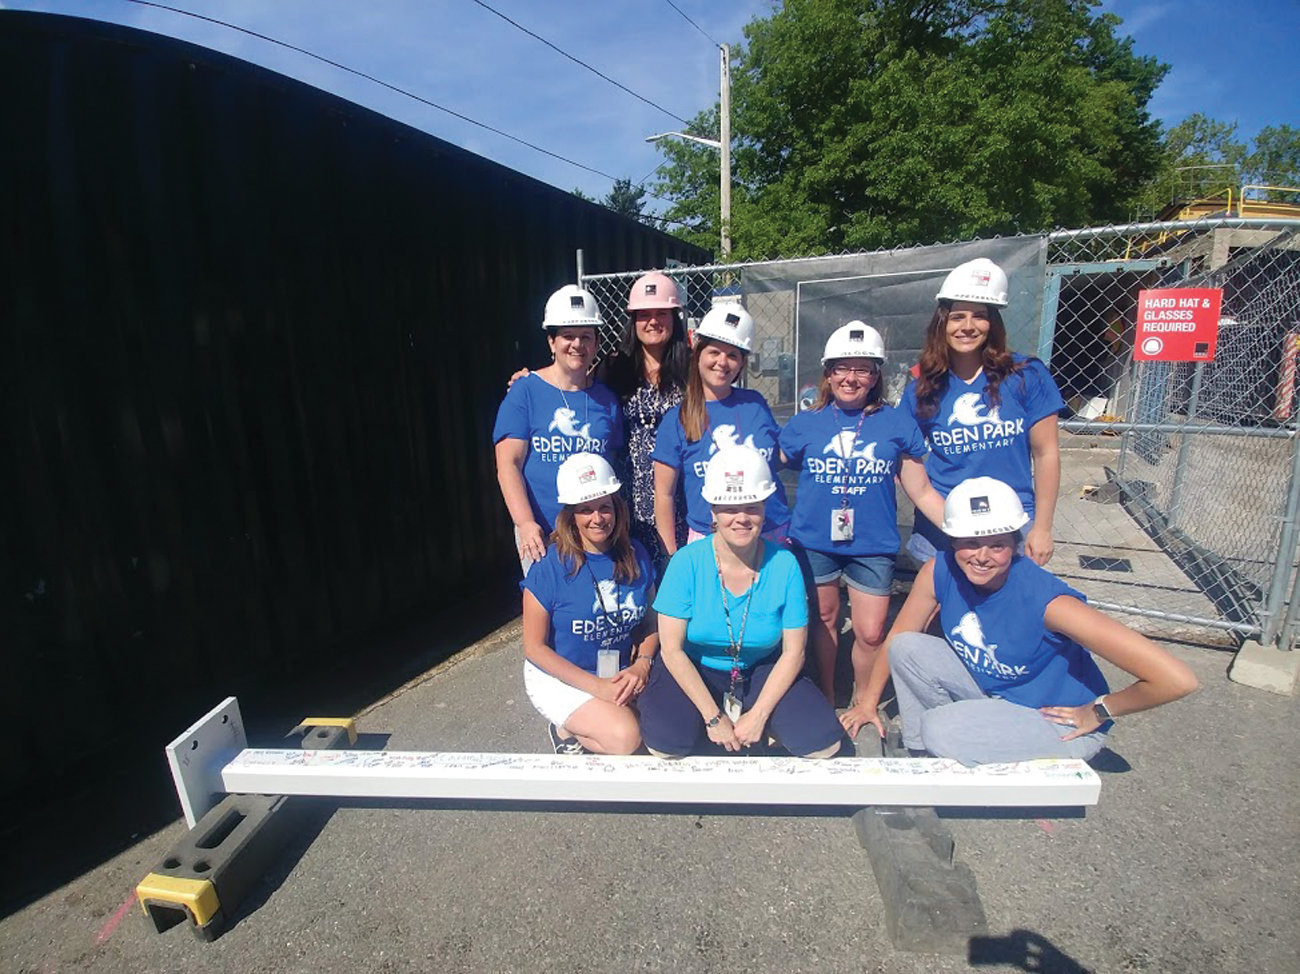 ENTHUSIASTIC CREW: The staff of the intermediate wing at Eden Park Elementary School has been enthusiastic and excited for the project and the possibilities it holds for the teaching and learning experiences at Eden Park.